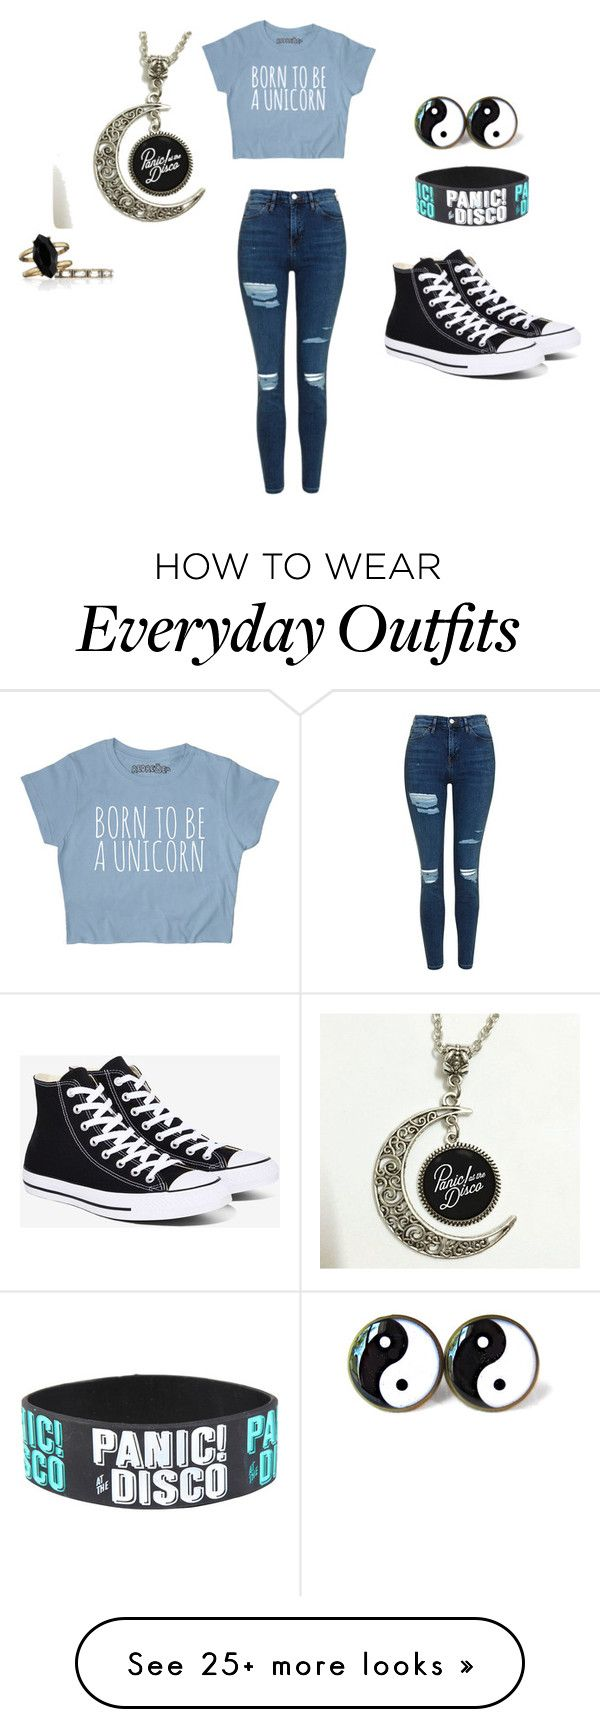 """Causal Everyday outfit"" by thefandombunny on Polyvore featuring Topshop, Converse and Chloe + Isabel"